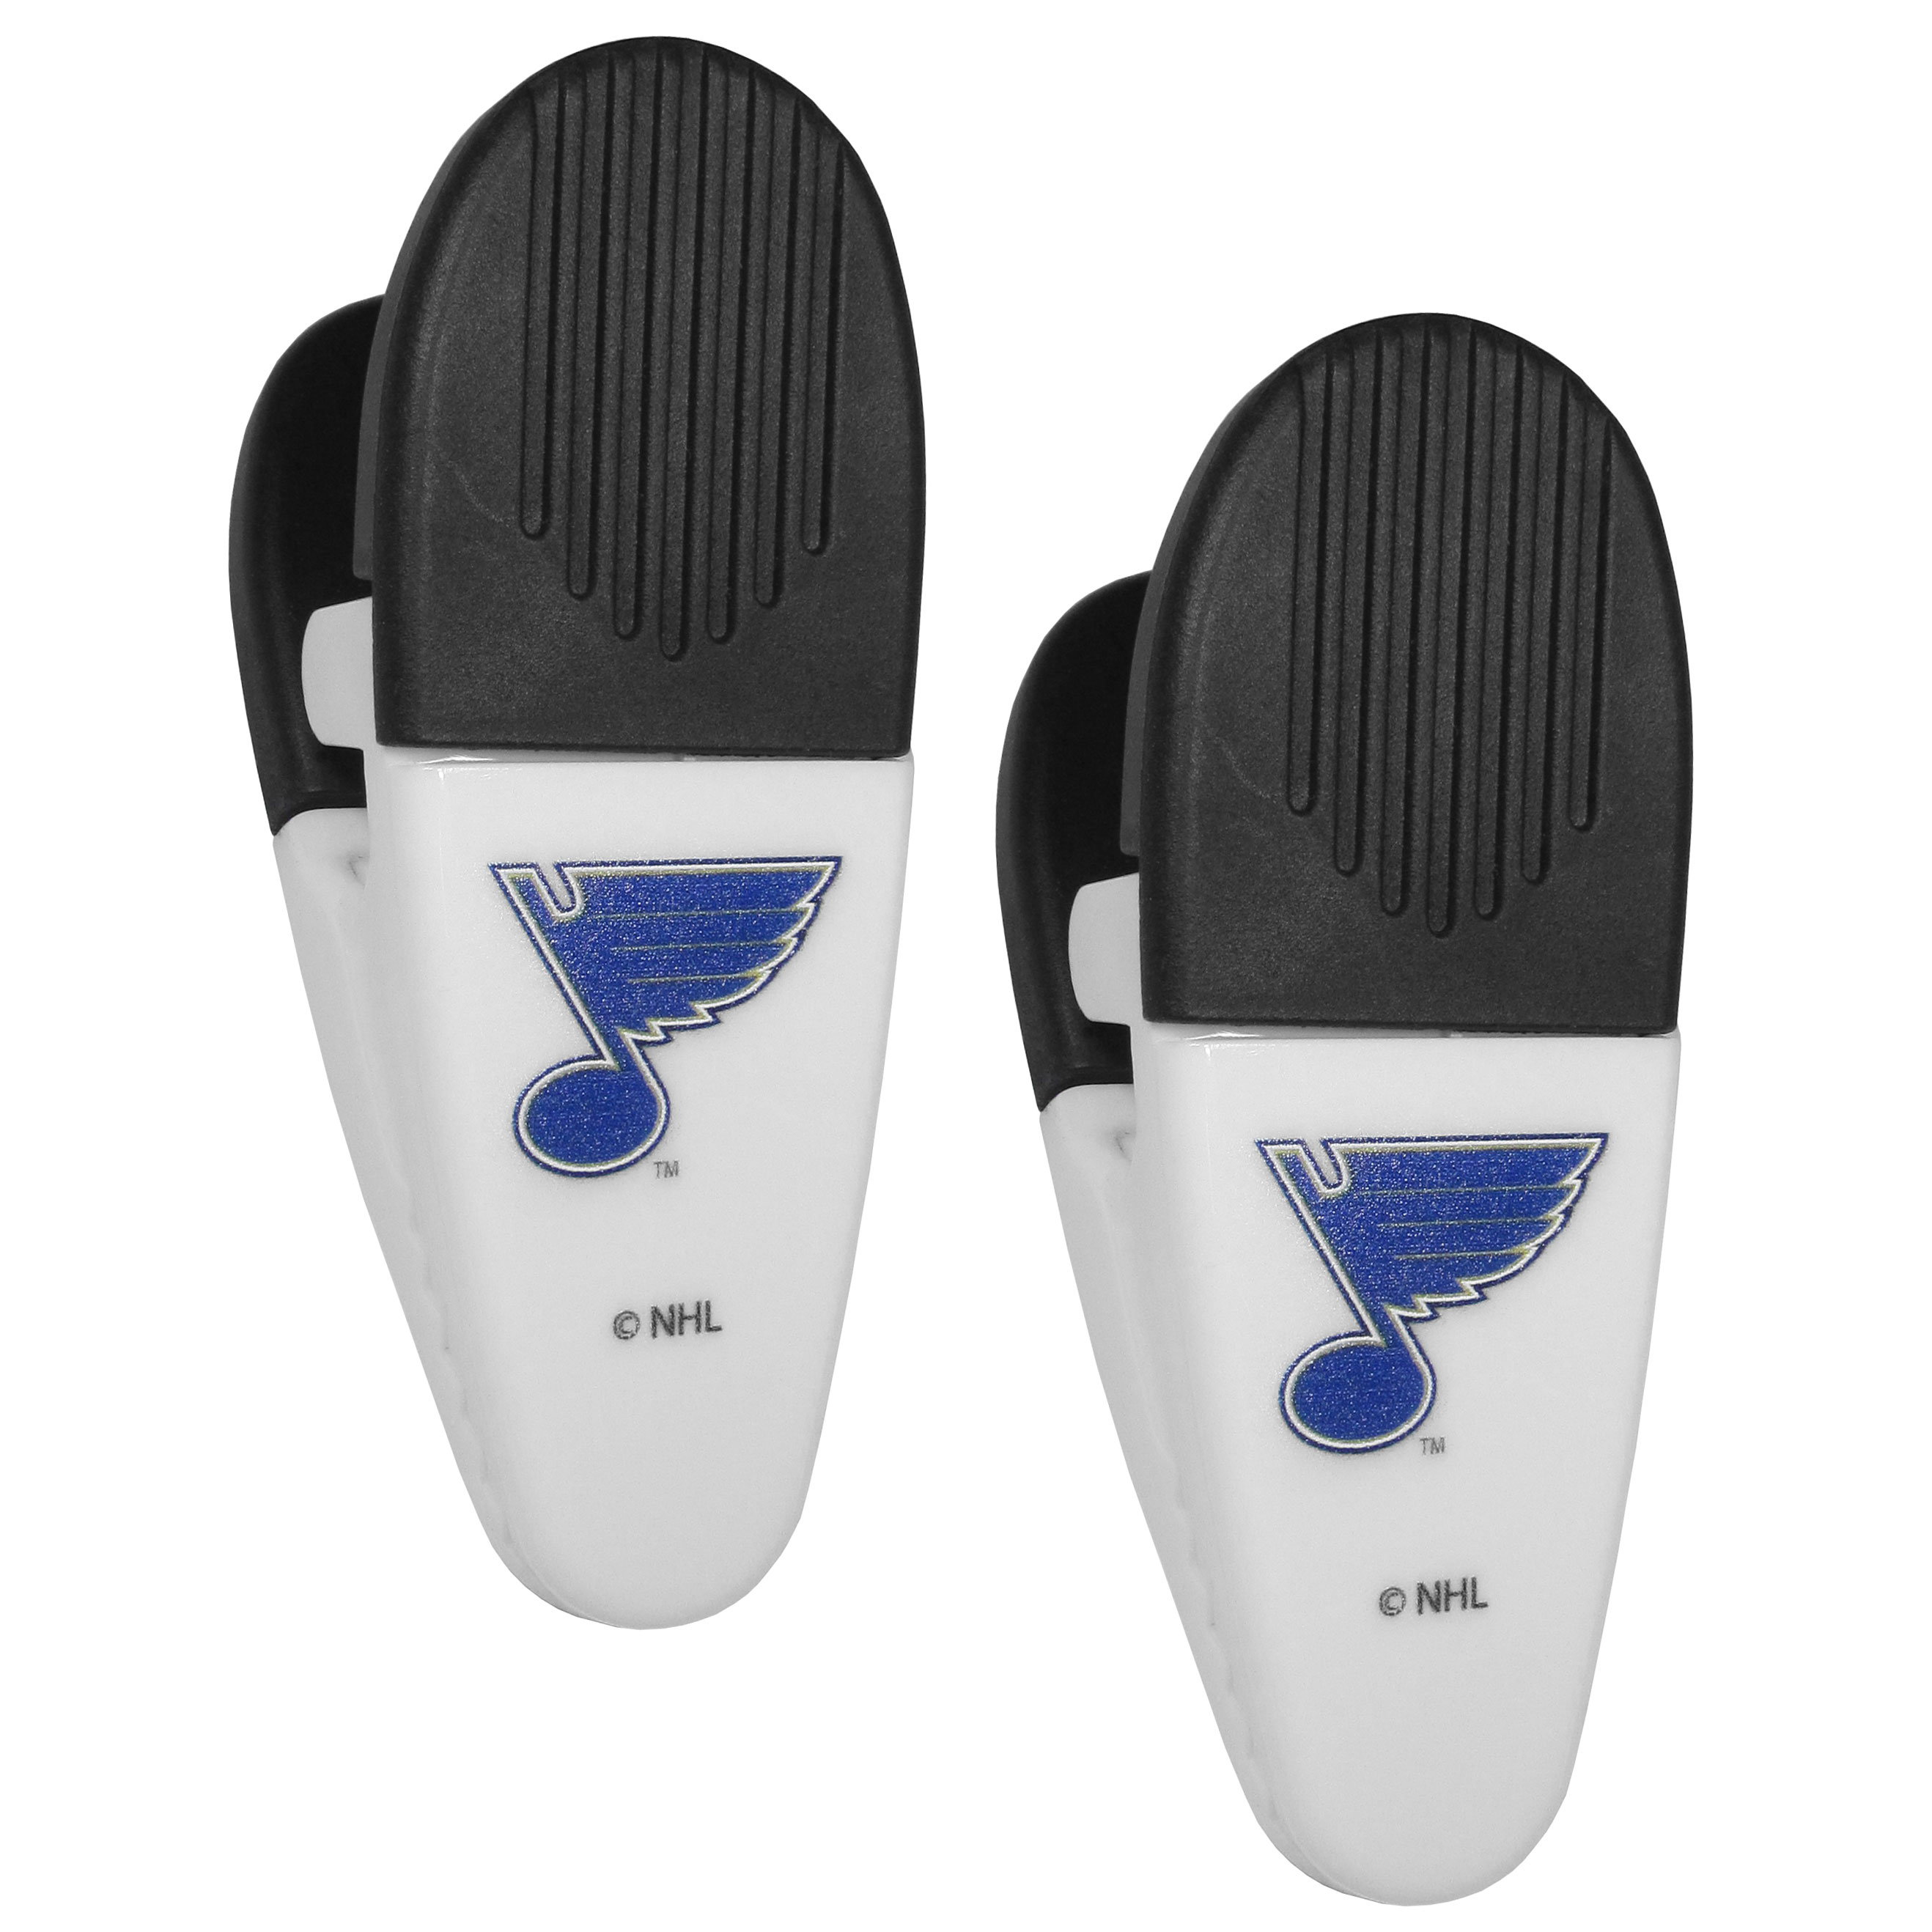 St. Louis Blues® Mini Chip Clip Magnets, 2 pk - Our St. Louis Blues® chip clip magnets feature a crisp team logo on the front of the clip. The clip is perfect for sealing chips for freshness and with the powerful magnet on the back it can be used to attach notes to the fridge or hanging your child's artwork. Set of 2 magnet clips, each clip is 3.5 inches tall and 1.25 inch wide.